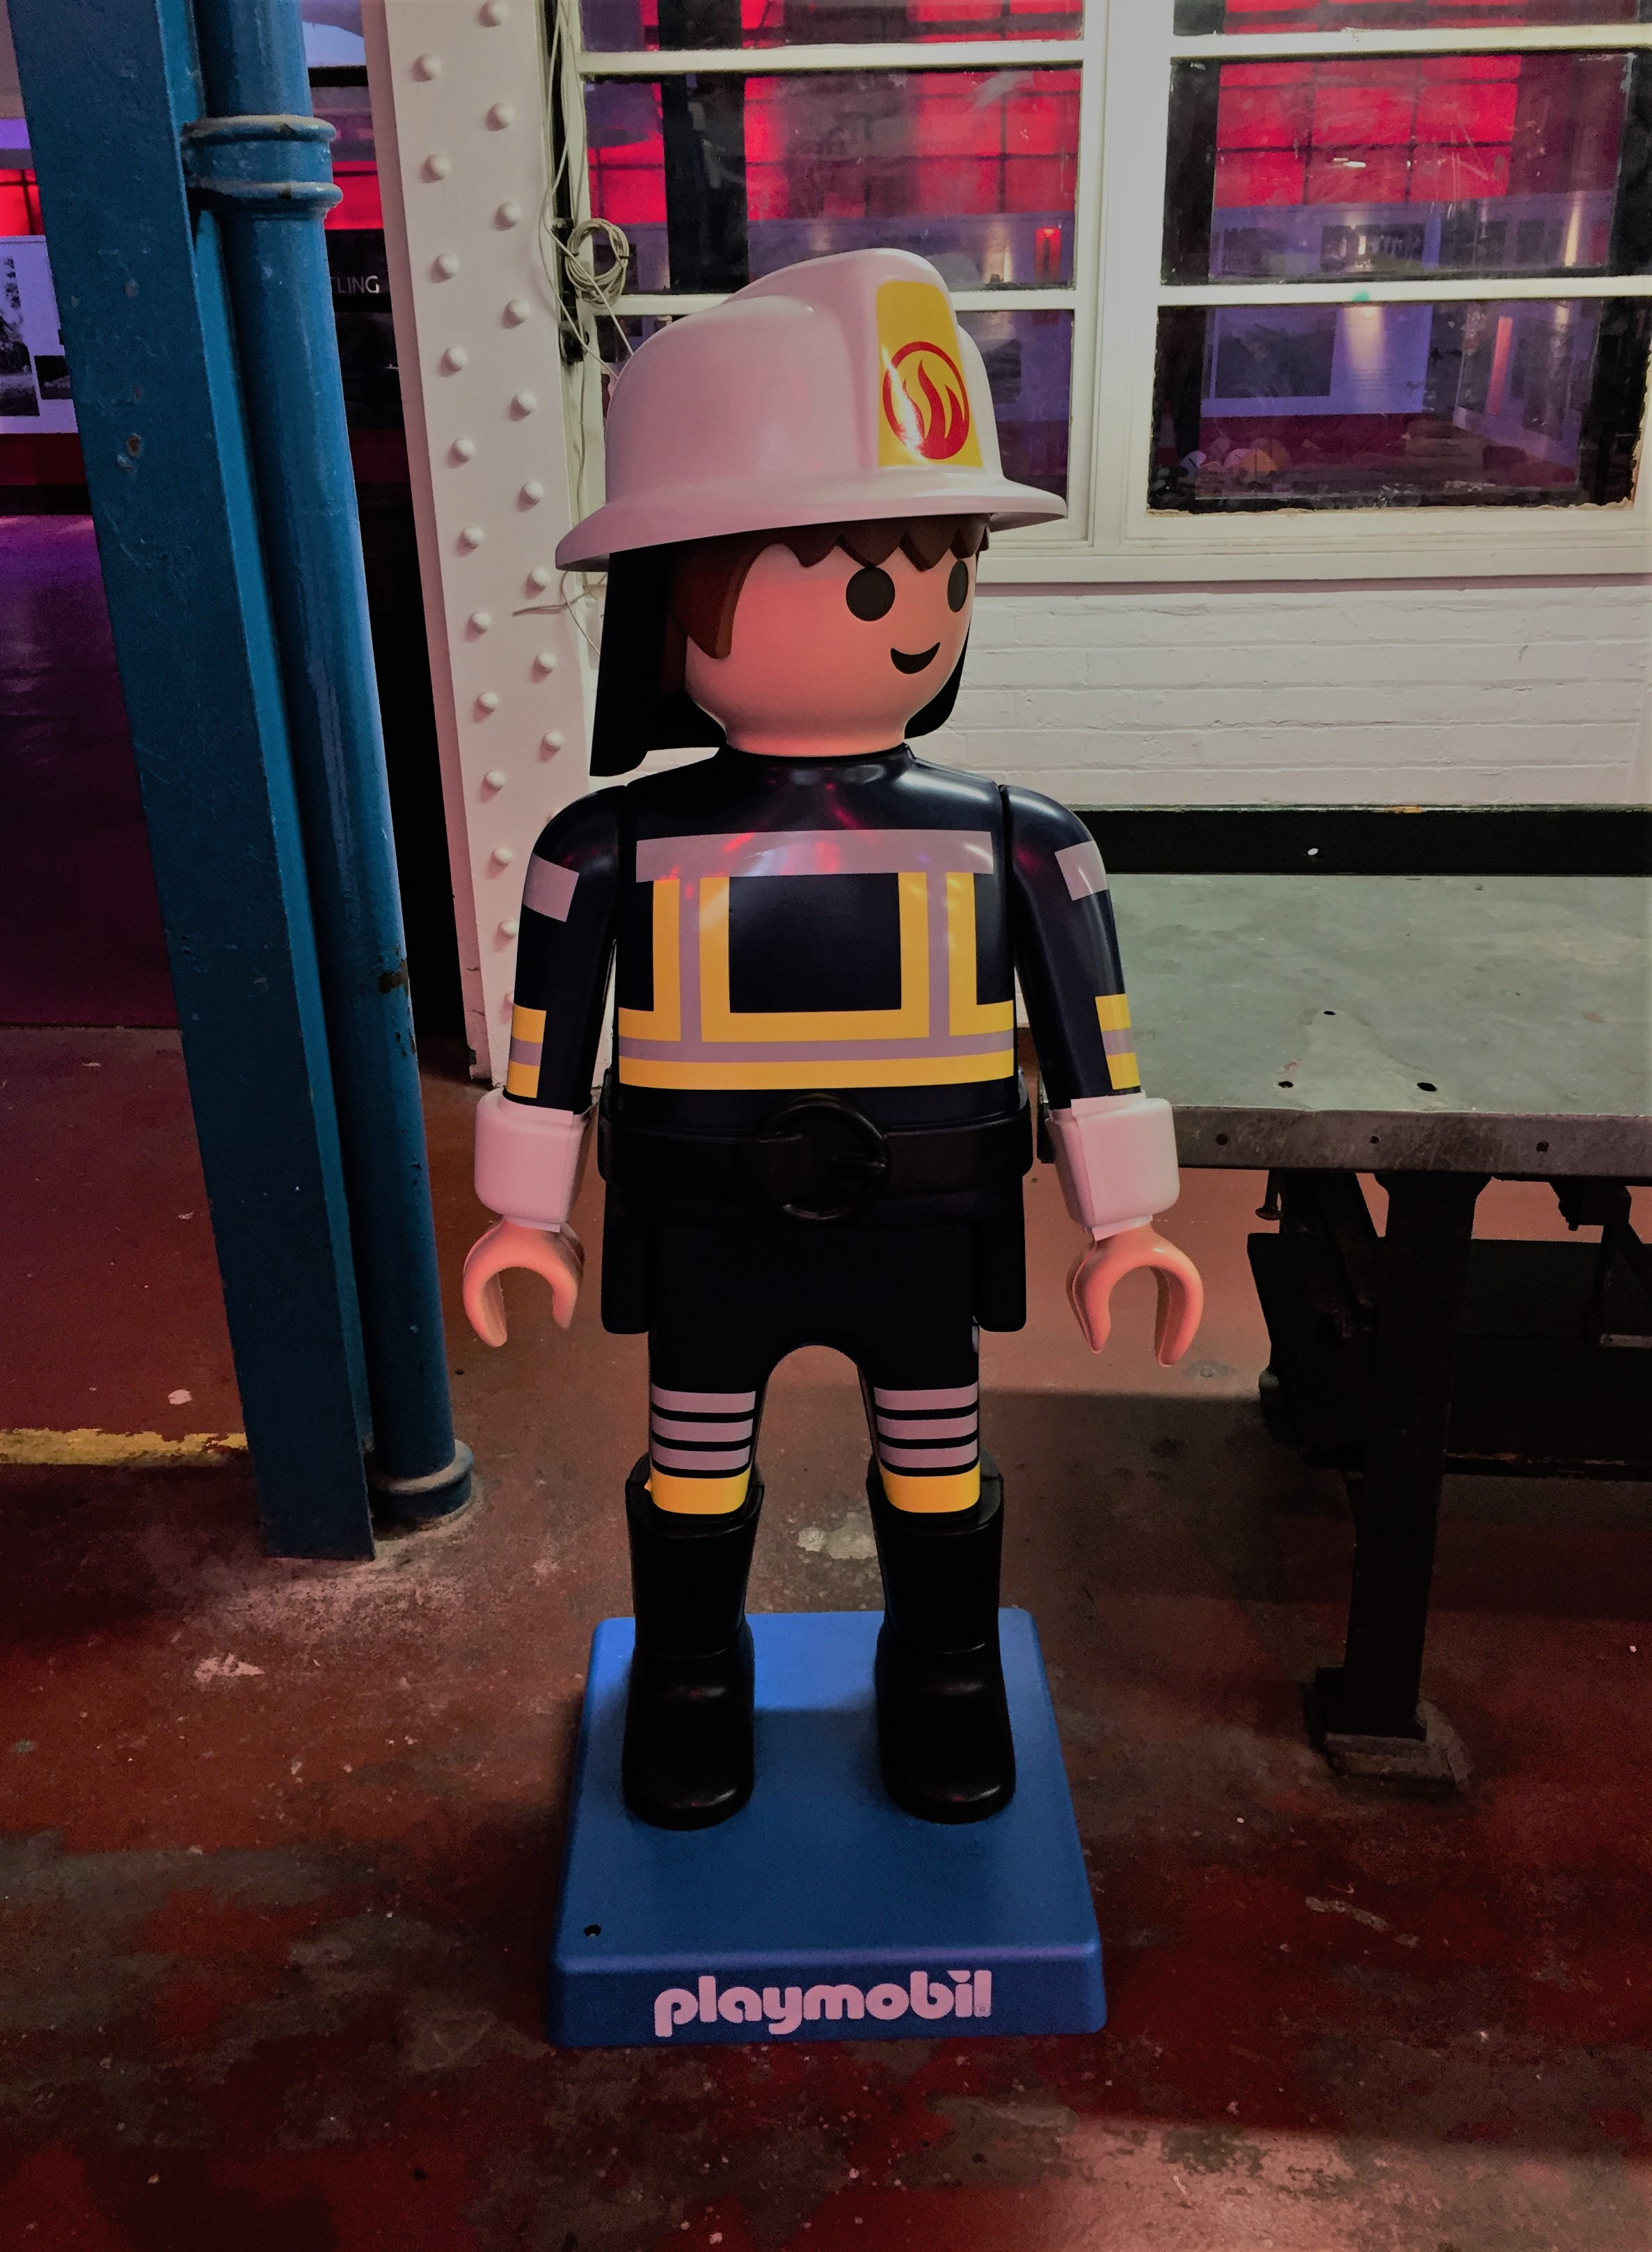 lego firewoman at London Fire Brigade Museum - kenningtonrunoff.com